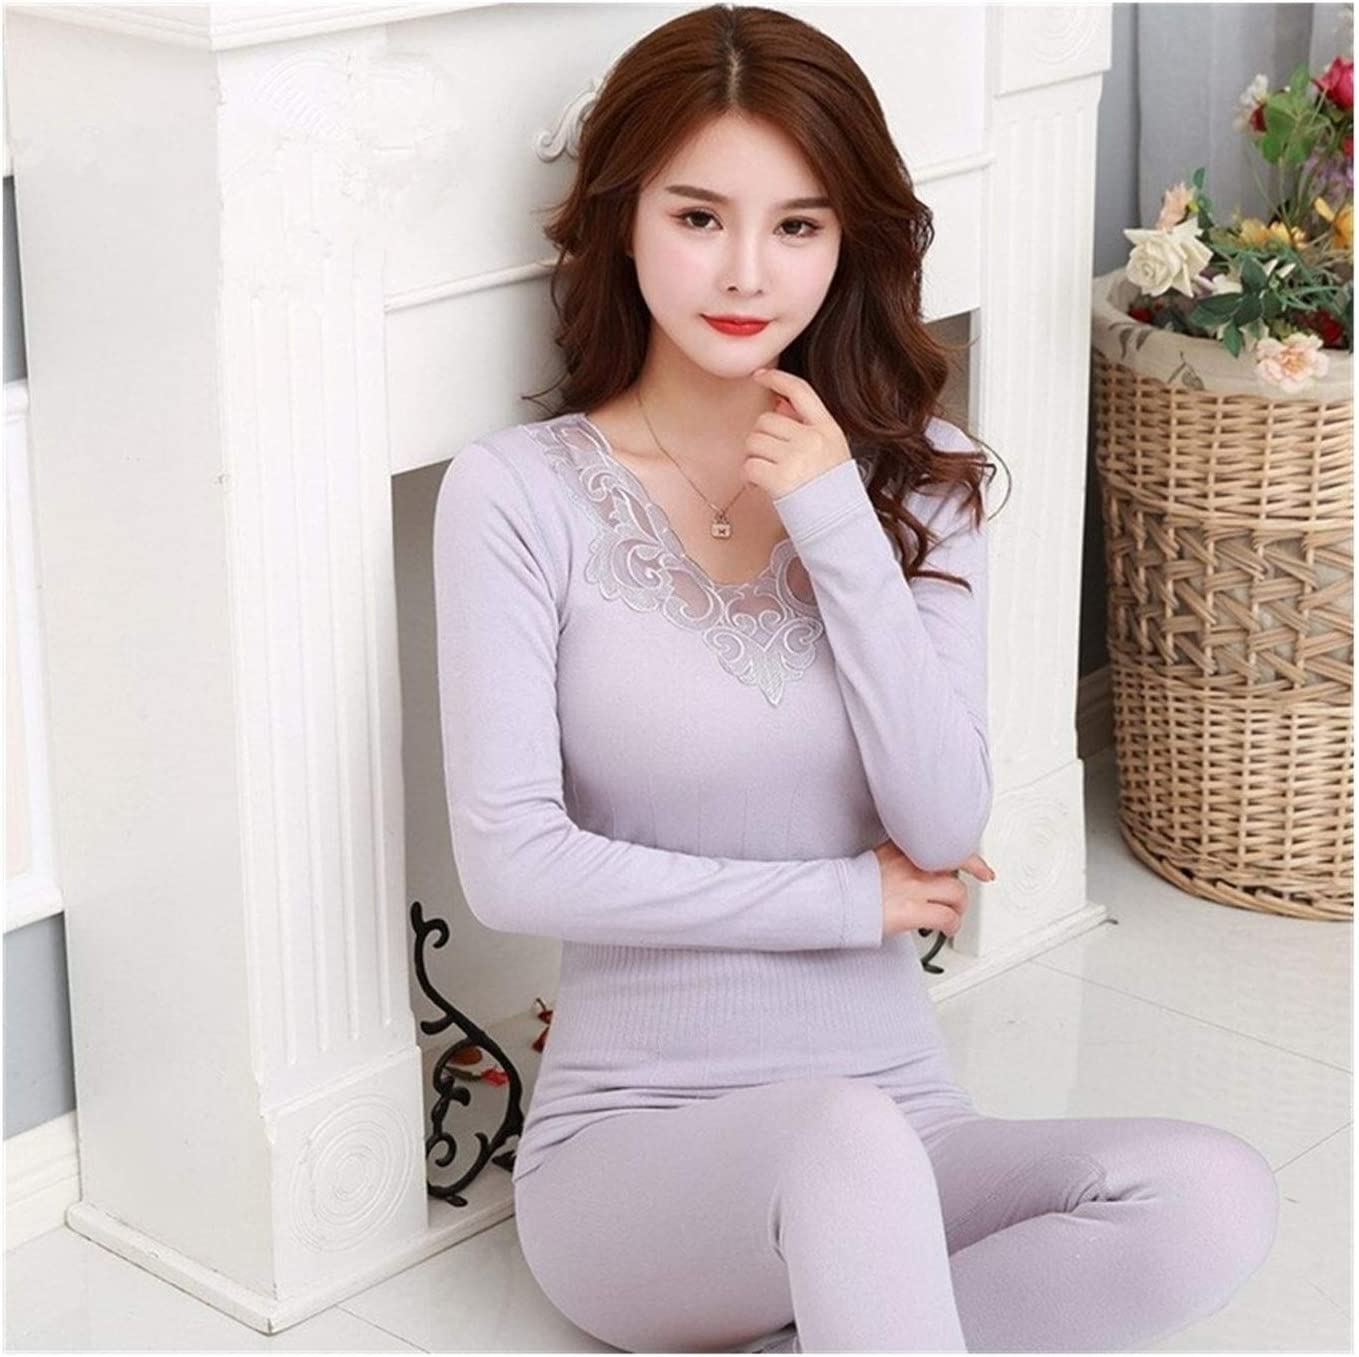 QWERBAM Thick Warm Underwear Women V-Neck Embroidery Set Elegant Slim Black Thermal Clothes Female Winter Suit (Color : Gray, Size : One Size)